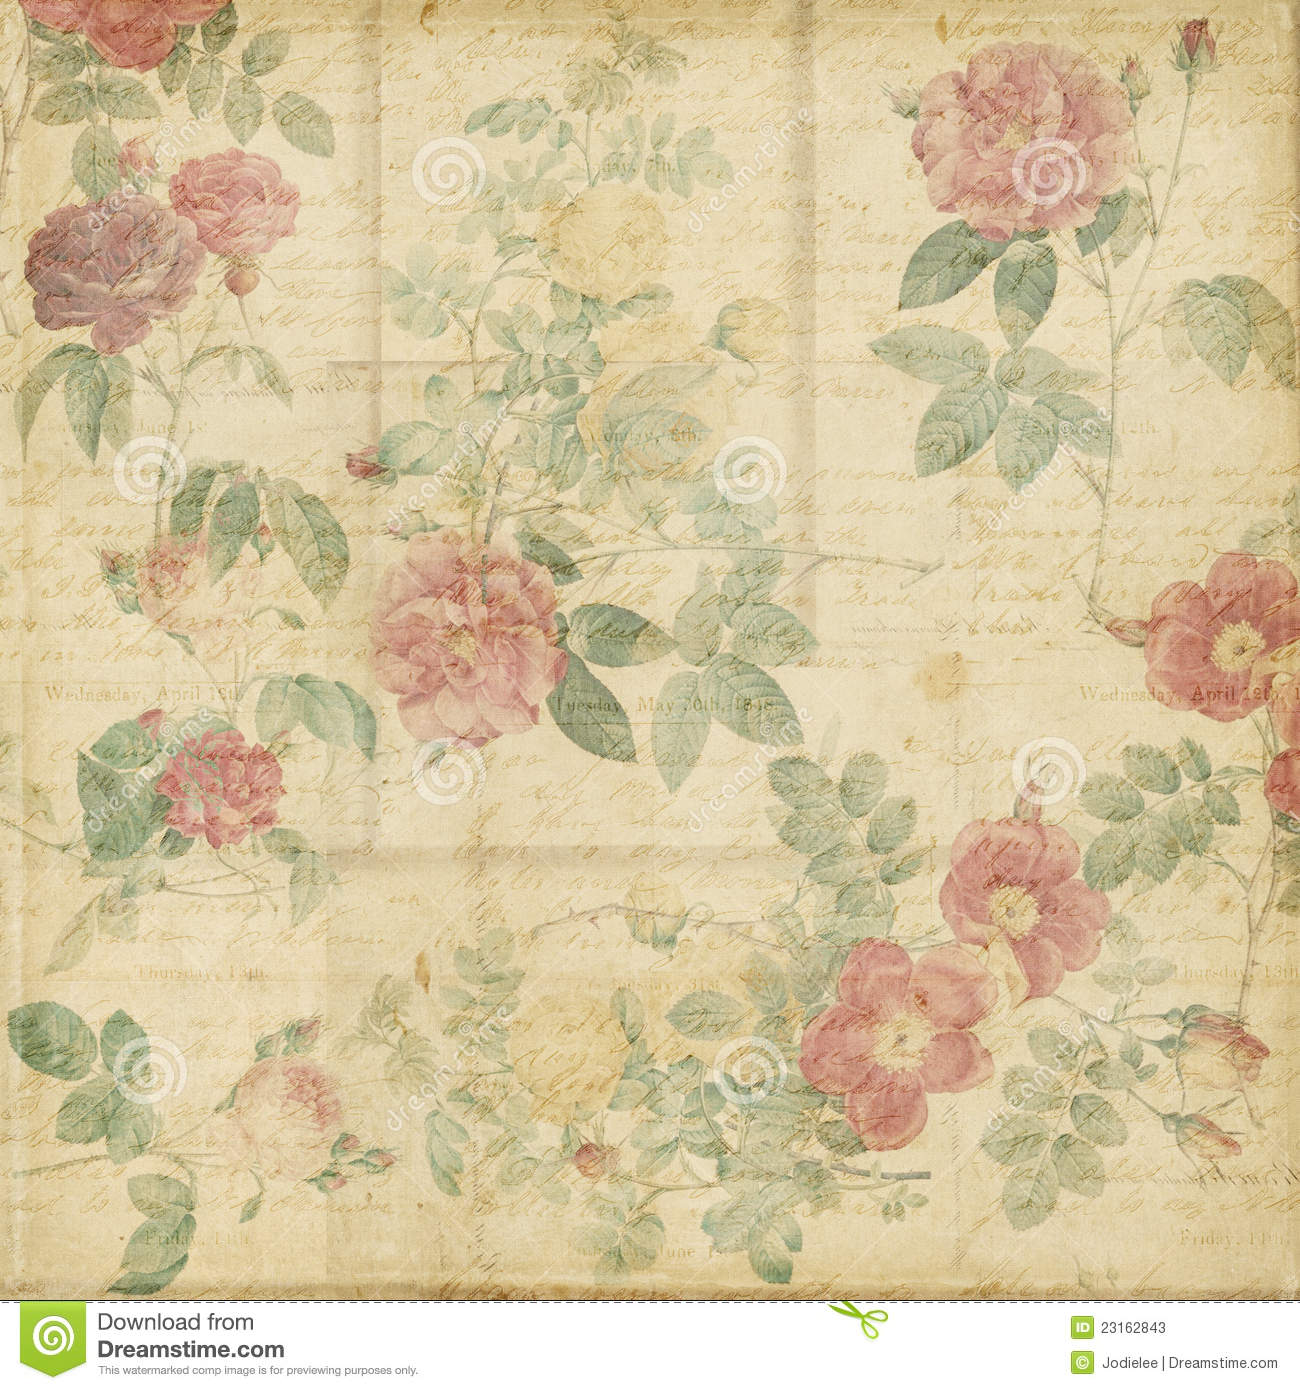 Botanical vintage roses shabby chic background stock - Papel pintado romantico ...